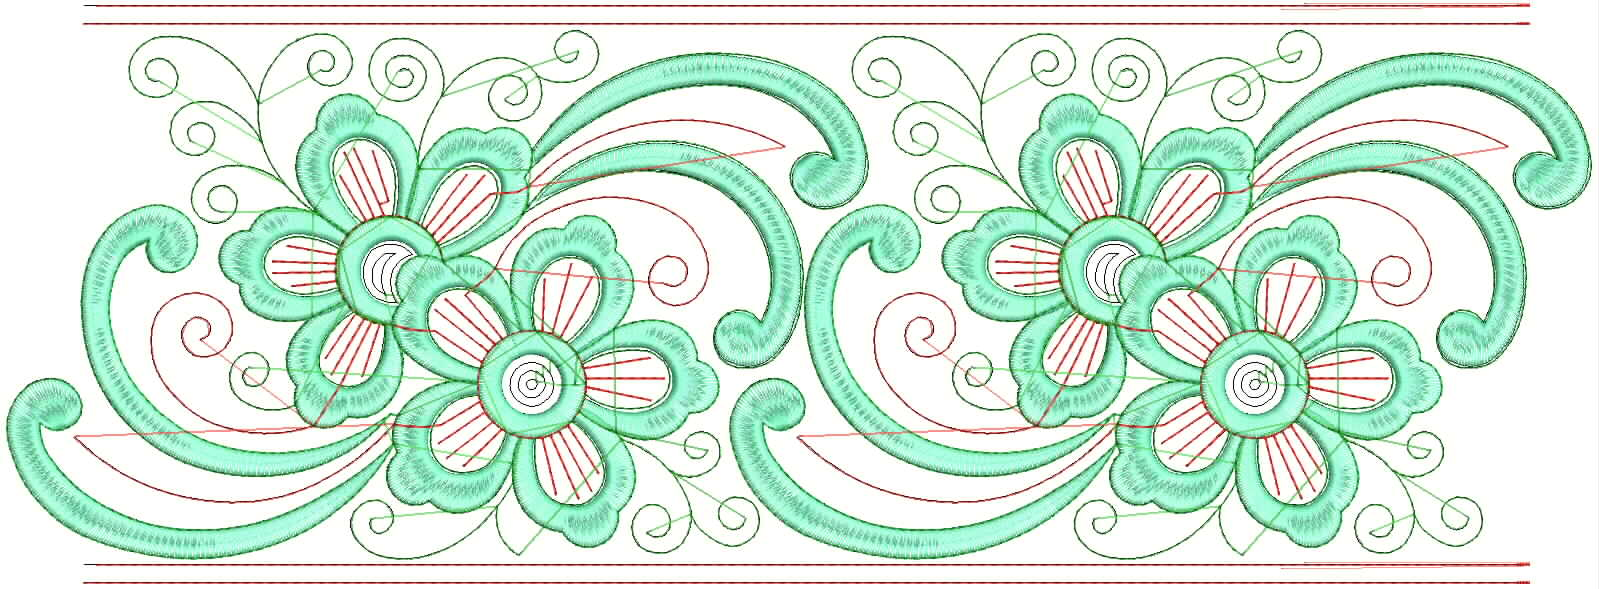 How To Machine Embroidery Lace Designs